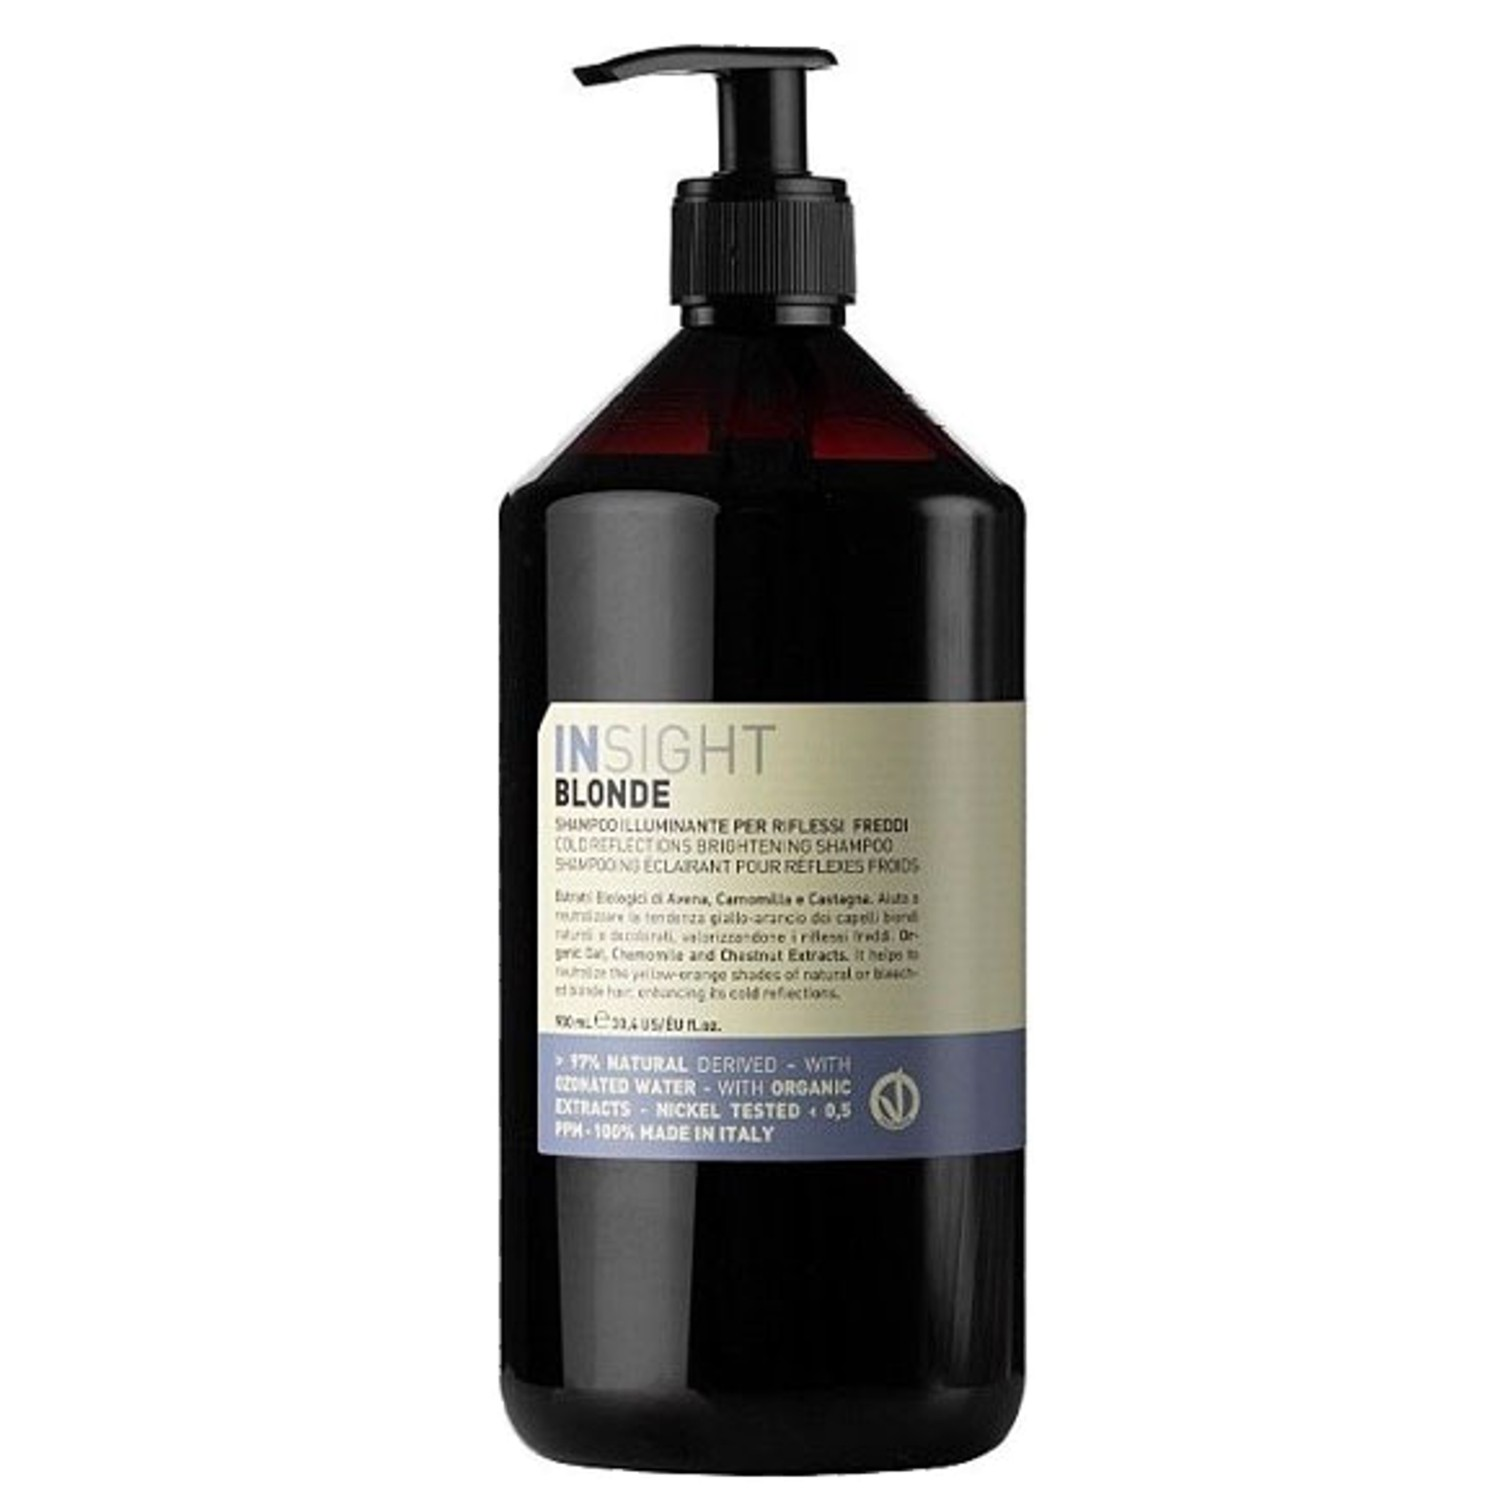 Insight BLONDE Cold Reflections Brightening Shampoo 900 ml